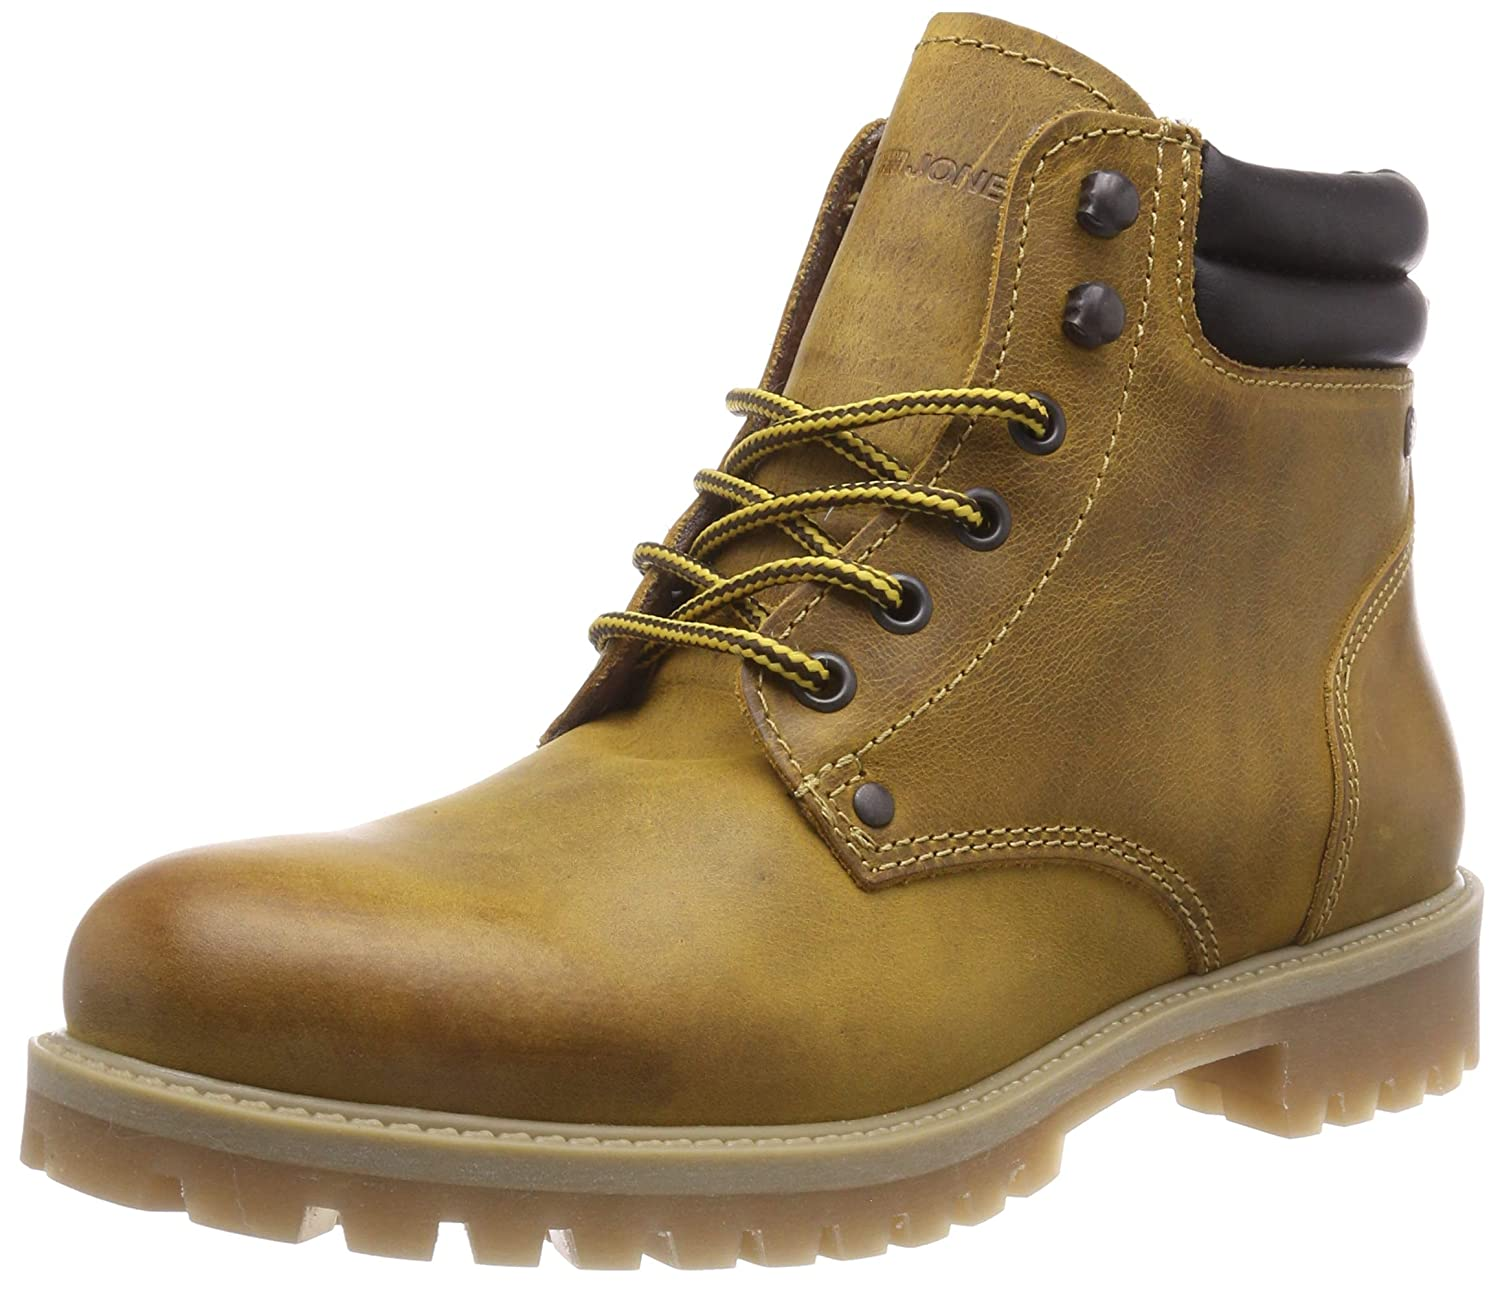 TALLA 45 EU. Jack & Jones Jfwstoke Leather Boot Honey, Botas Estilo Motero para Hombre